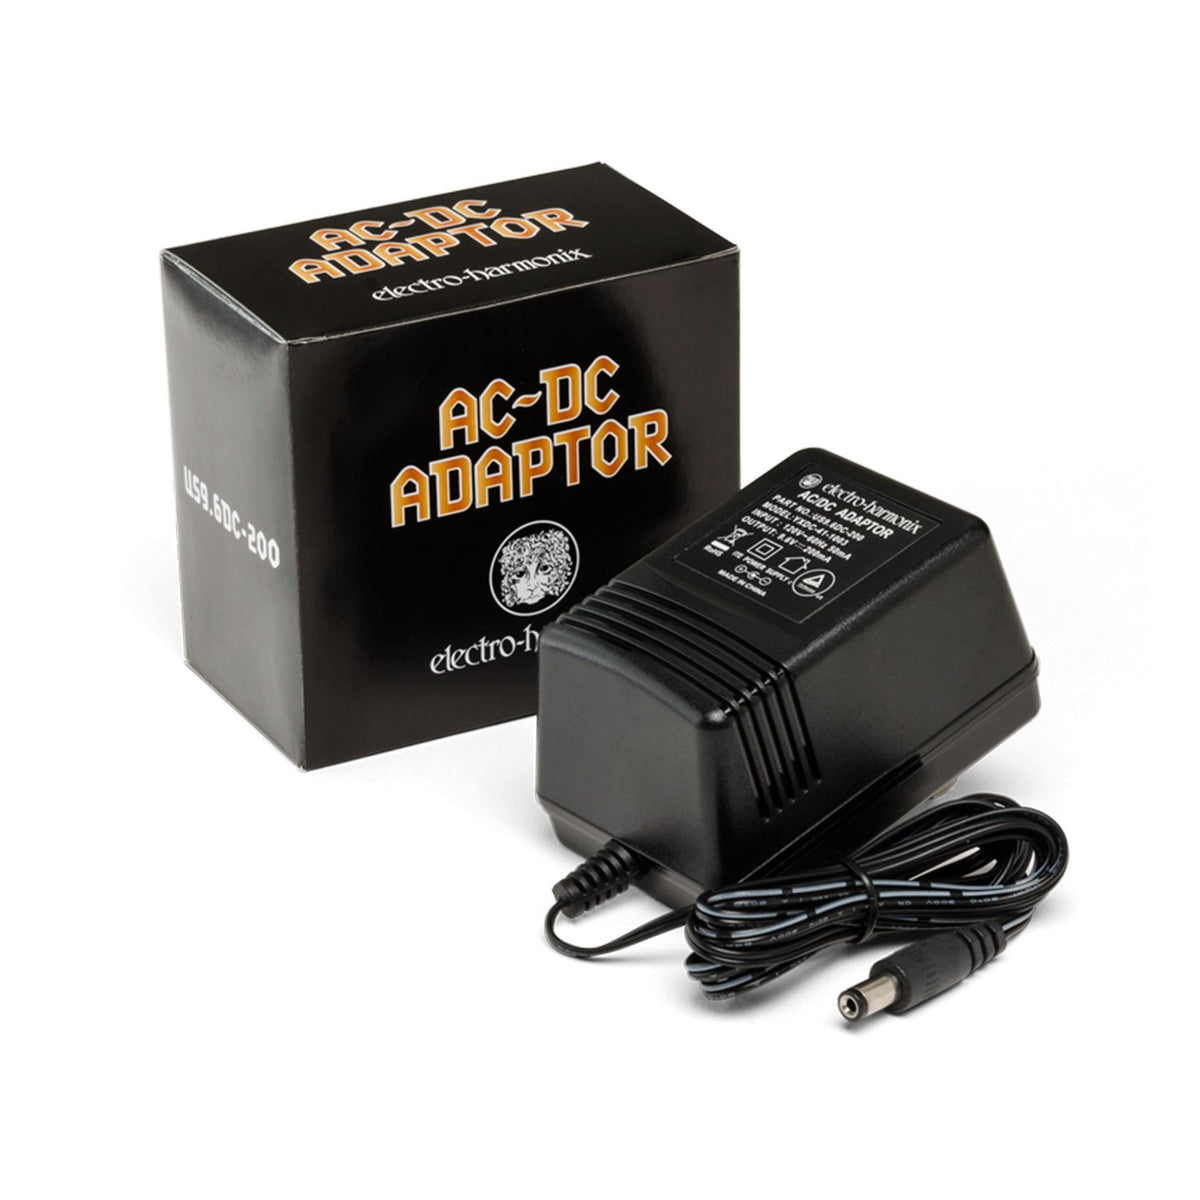 Electro-Harmonix 9.6V AC-DC Power Supply for MICRO Q-TRON Guitar Effects Pedals